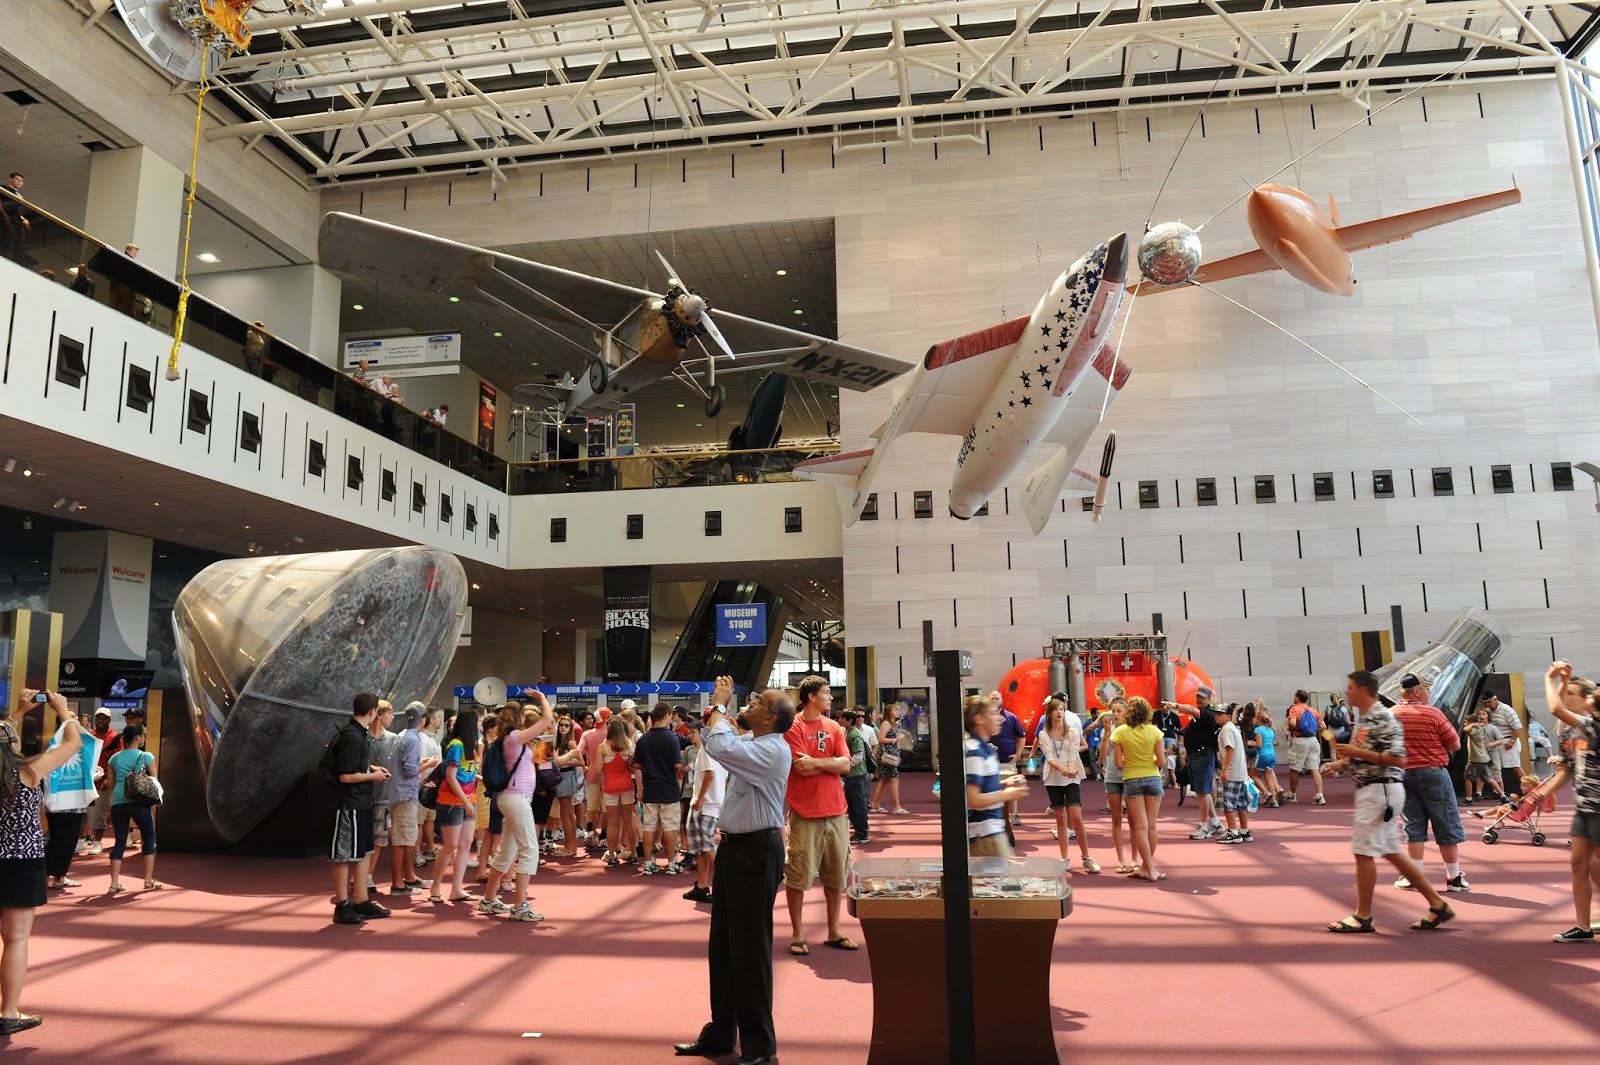 These Are The 25 Best Museums In The World - National Air and Space Museum